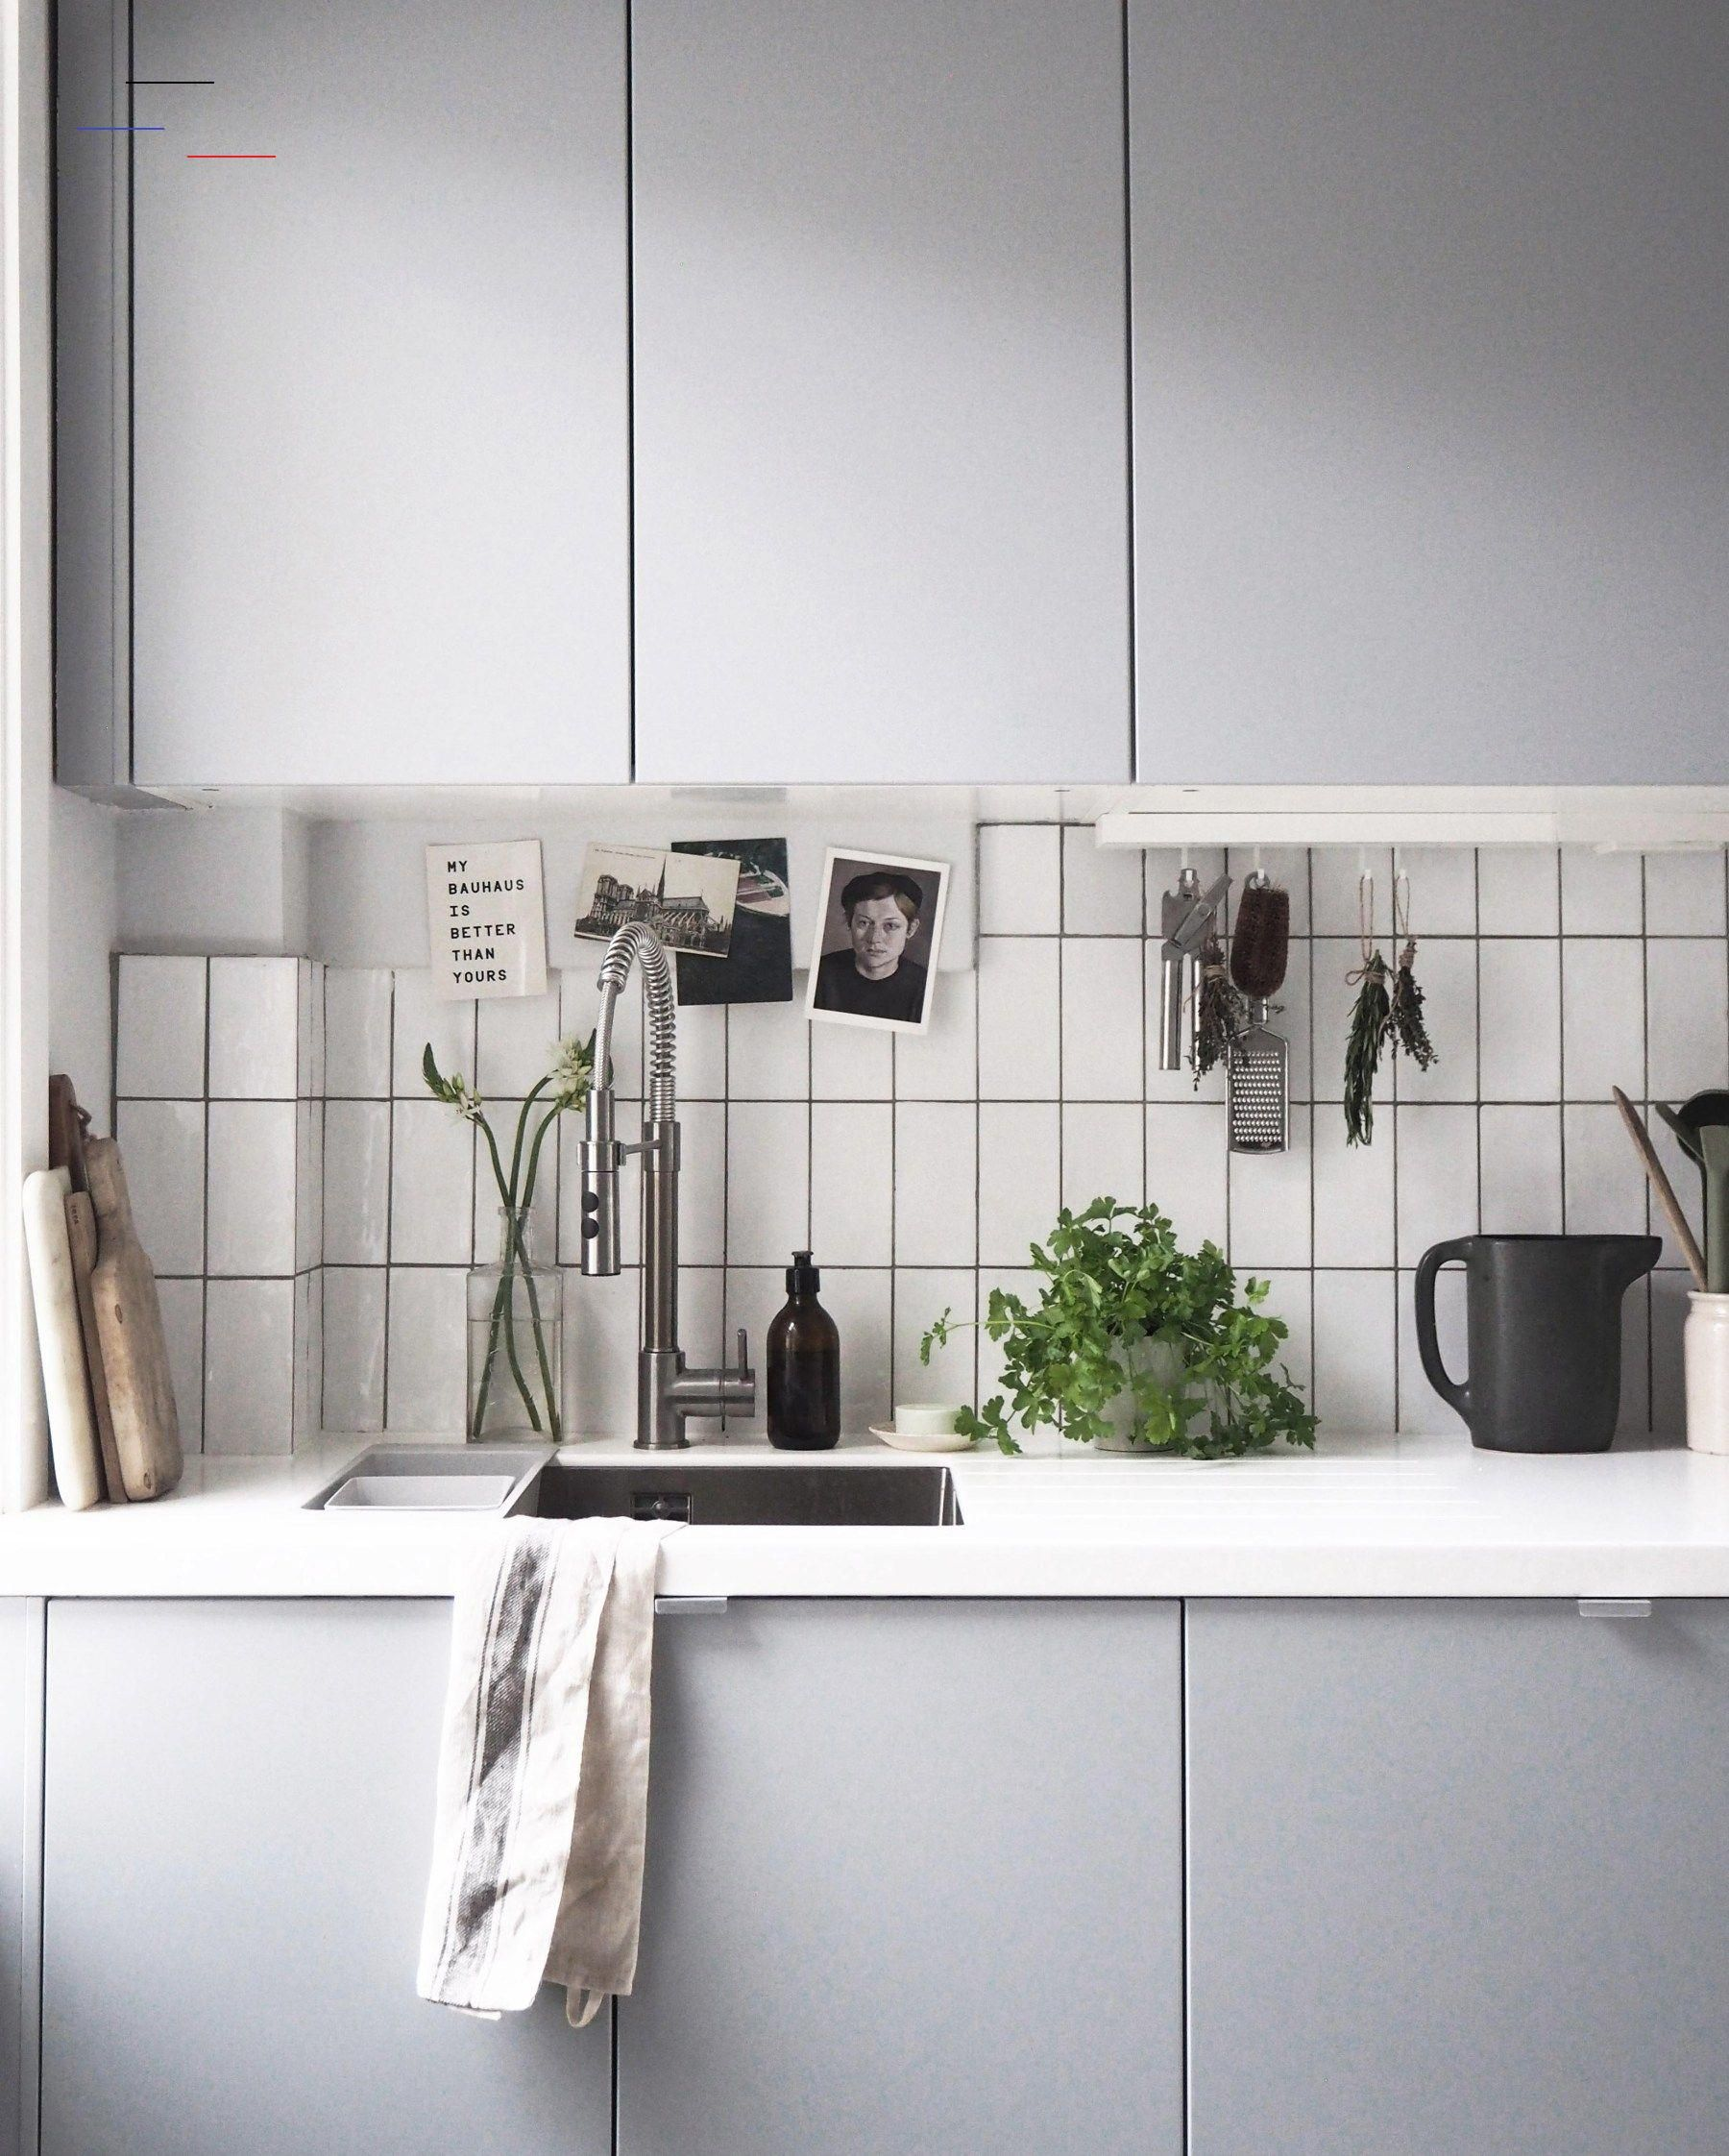 Ikea Küche Bauhaus Arbeitsplatte My Ikea Kitchen Makeover - The Transformation - Cate St Hill - #ikeakeuken - A Before And After Kitchen Makeover – An … | Ikea Küche, Ikea Küchenideen, Küchendesign